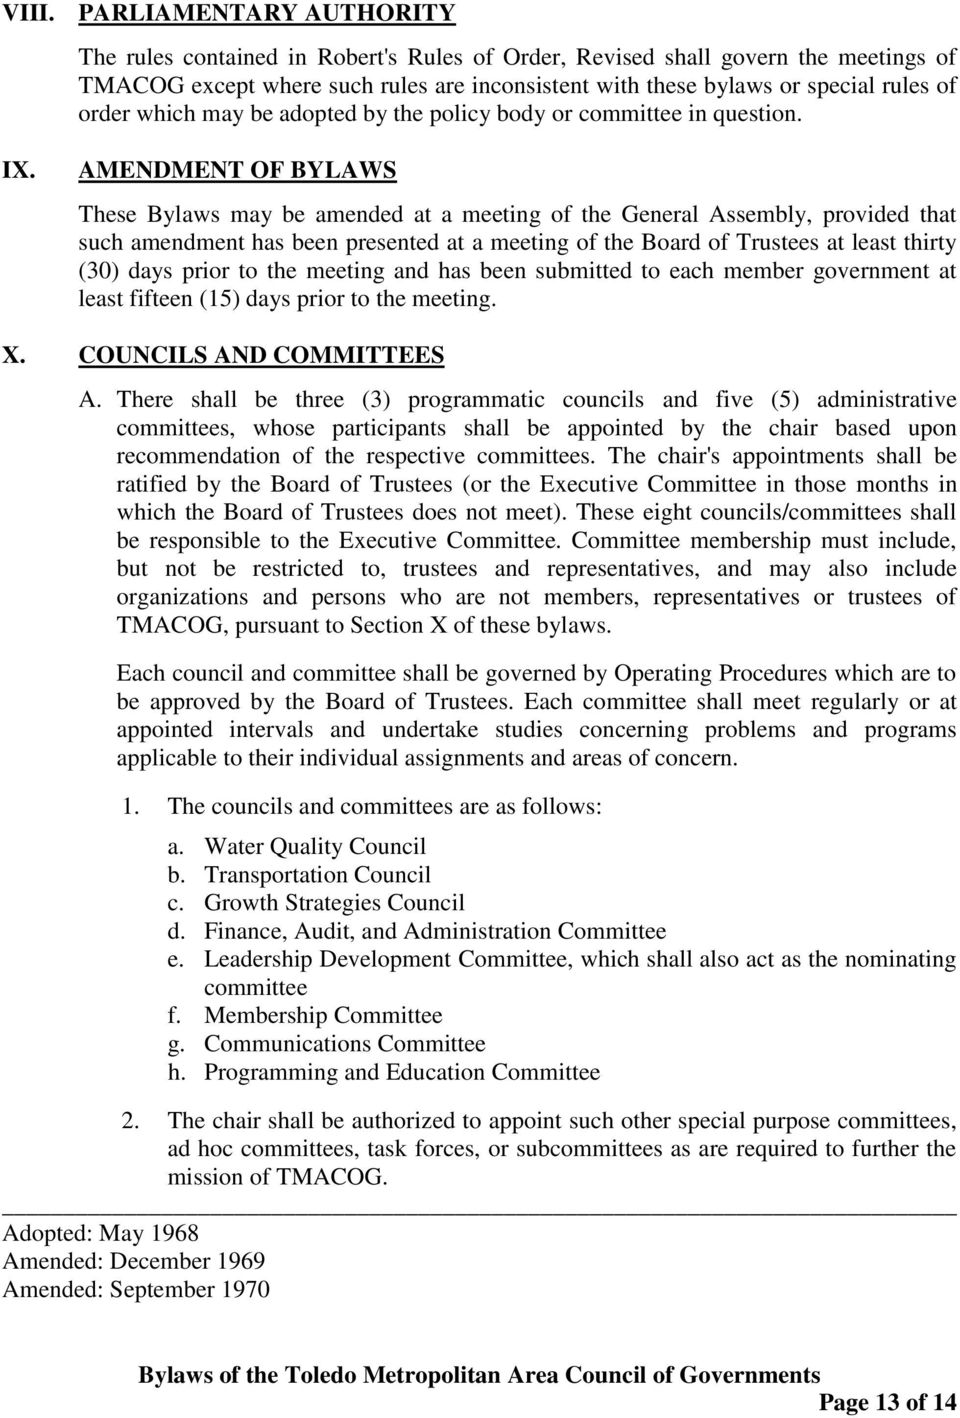 AMENDMENT OF BYLAWS These Bylaws may be amended at a meeting of the General Assembly, provided that such amendment has been presented at a meeting of the Board of Trustees at least thirty (30) days